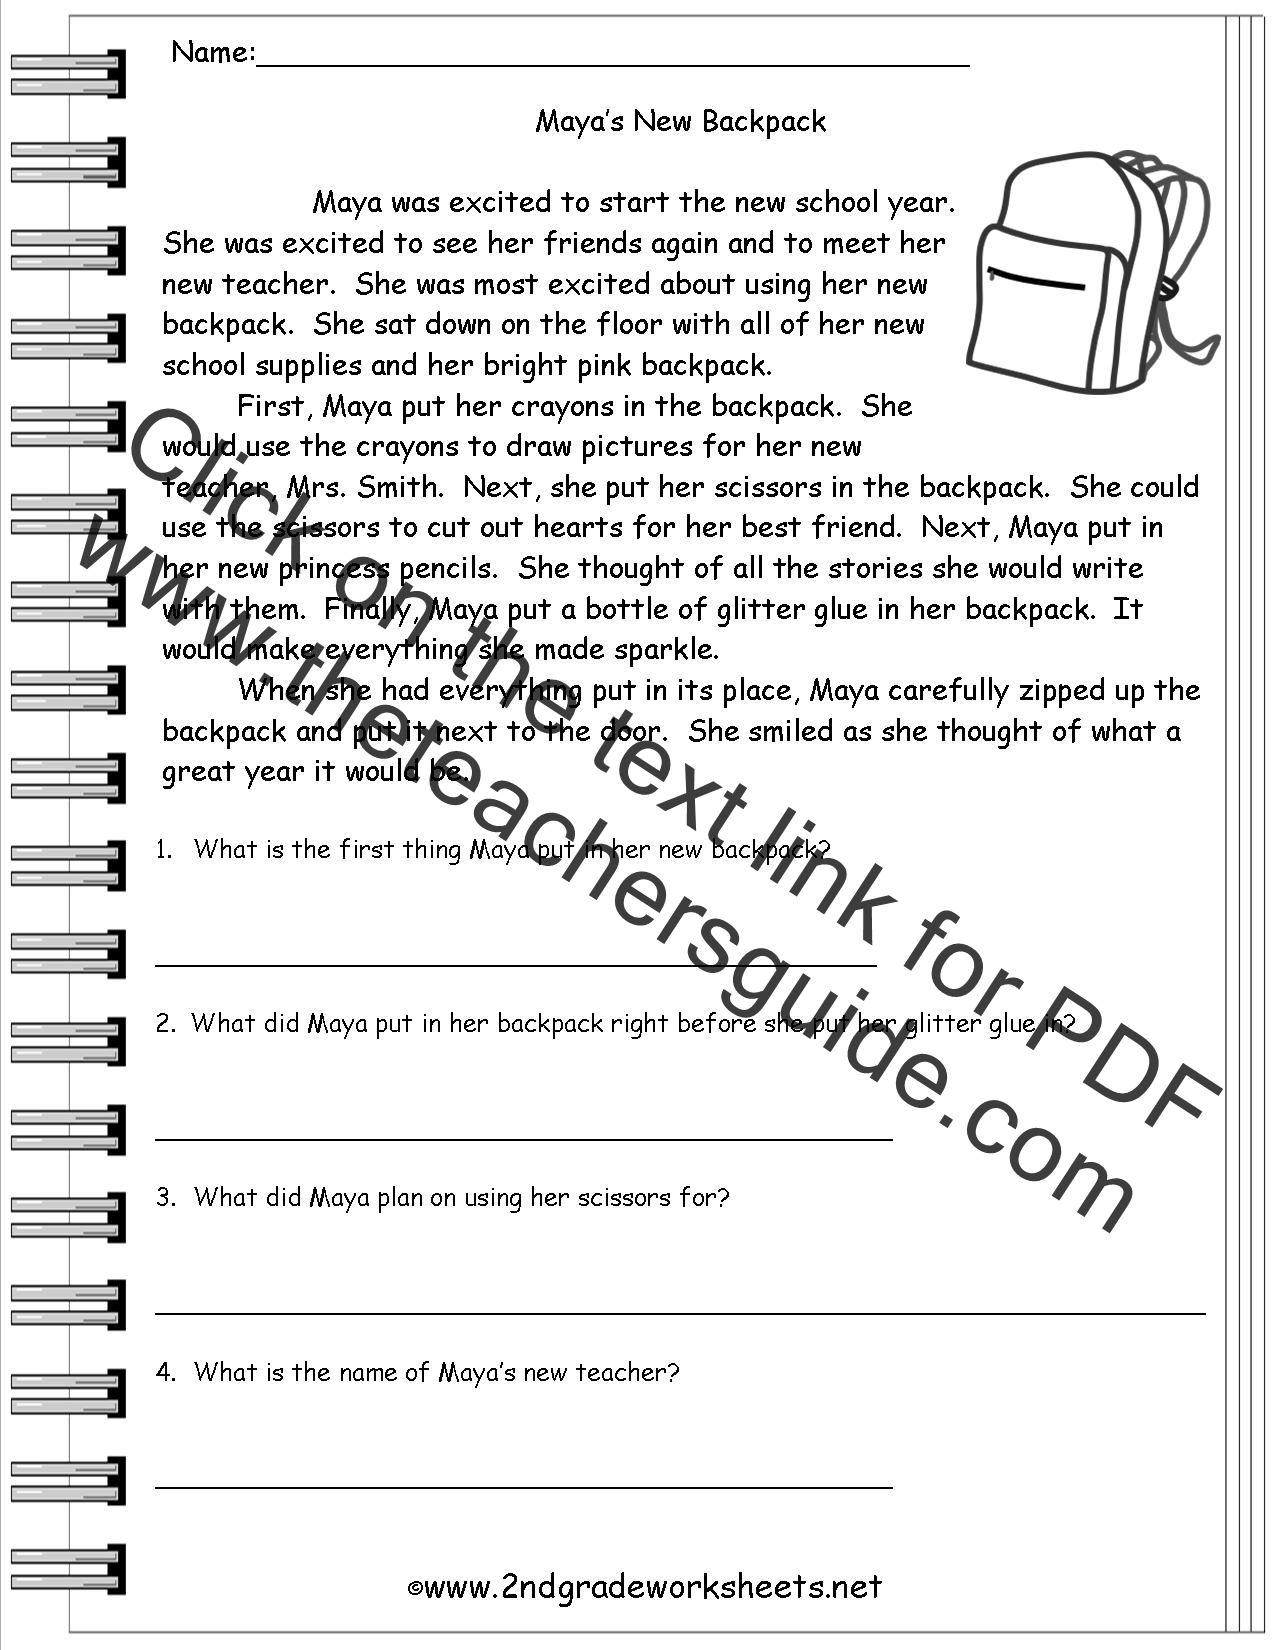 Worksheet Reading Comprehension For Second Grade reading worksheeets literature worksheets